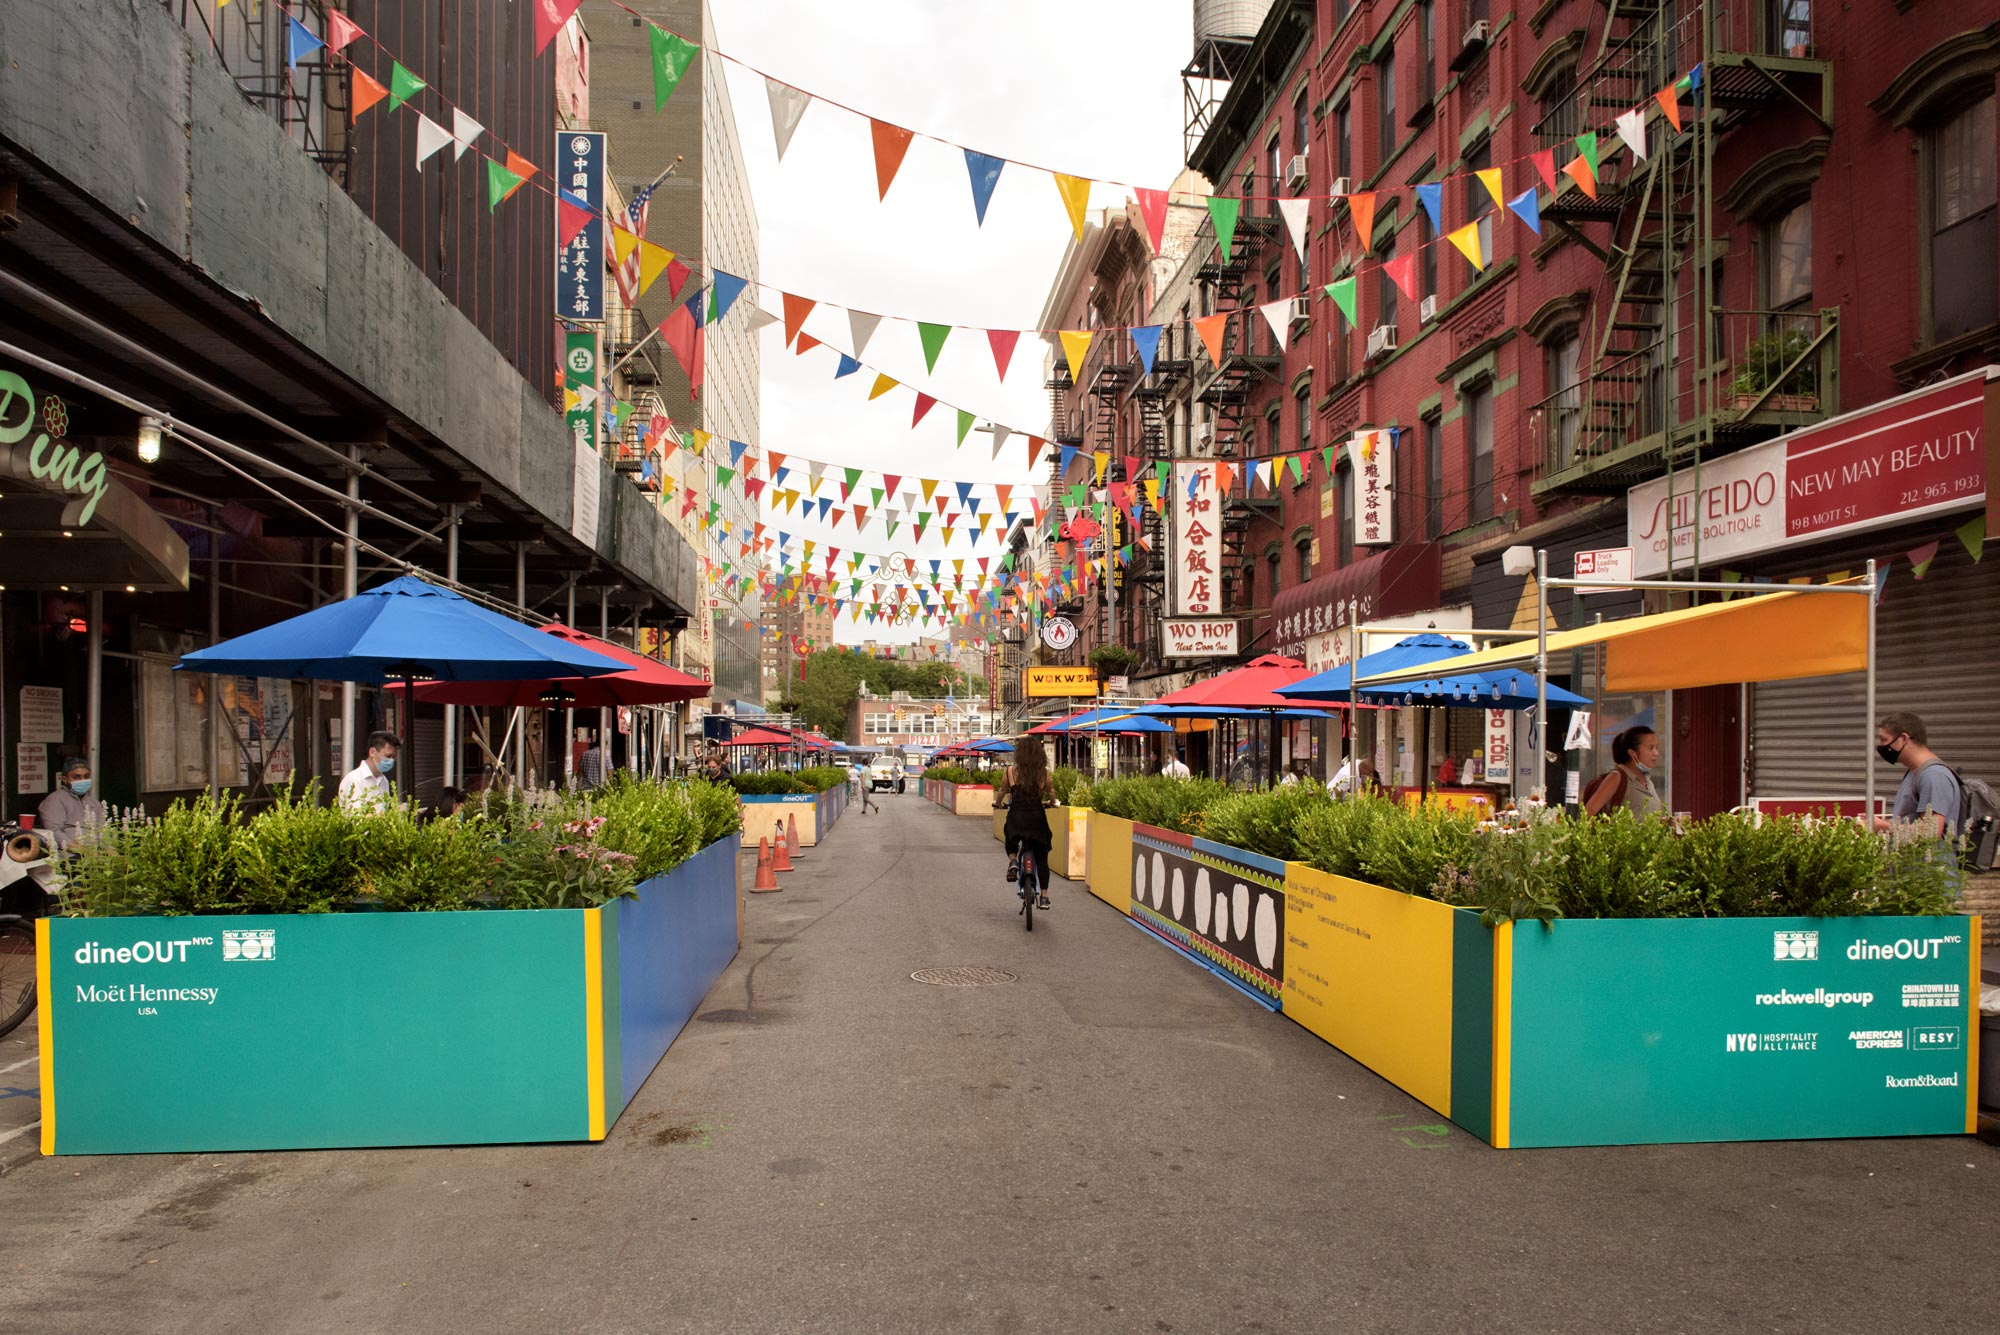 Chinatown S Historic Mott Street Is Transformed Into An Outdoor Dining Oasis 6sqft